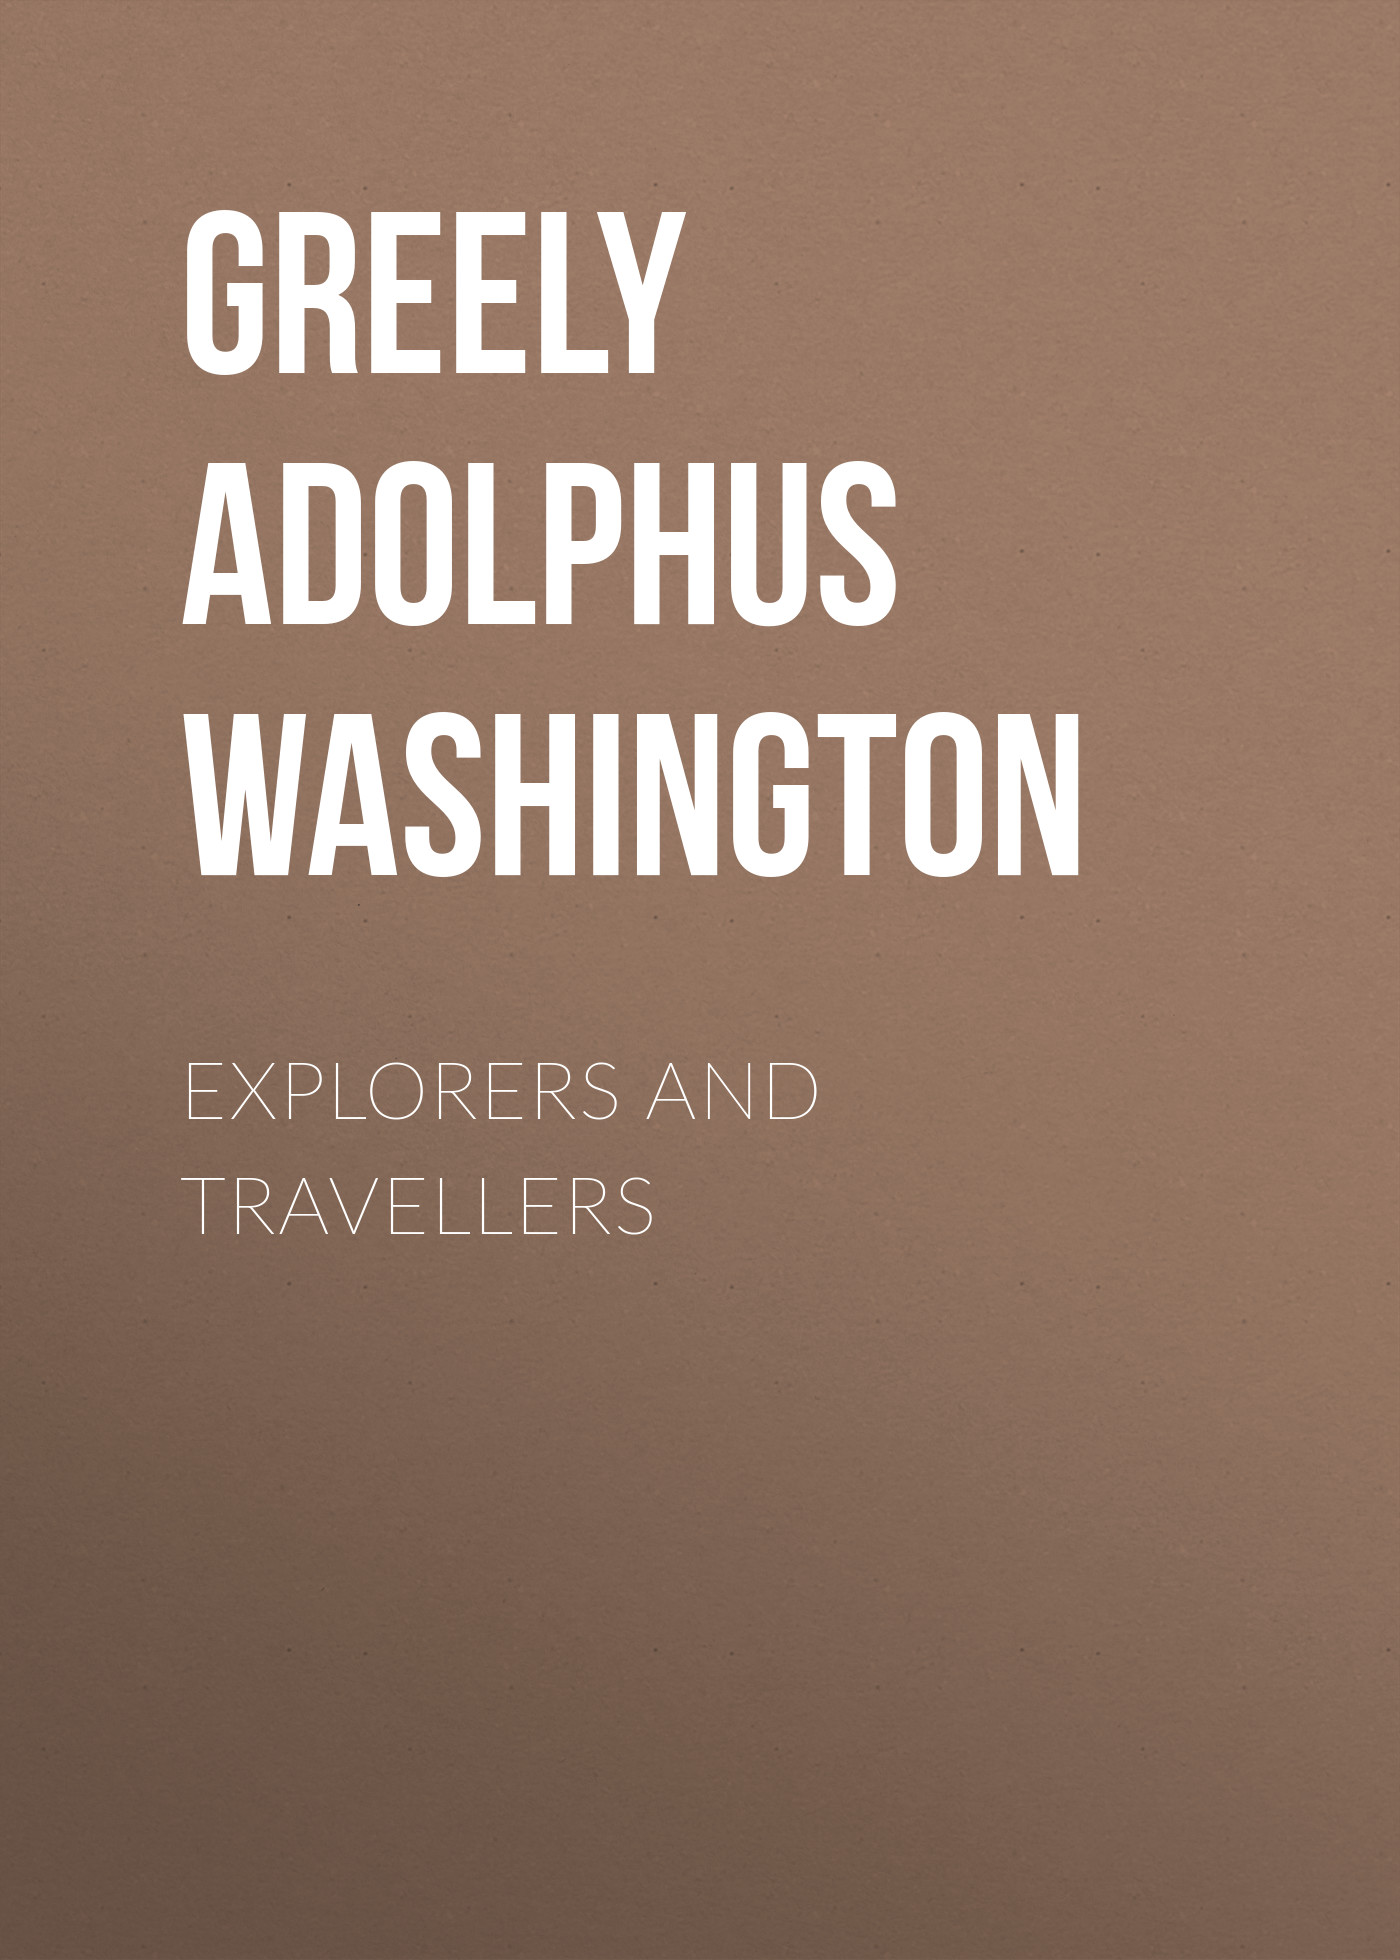 Greely Adolphus Washington Explorers and Travellers travellers